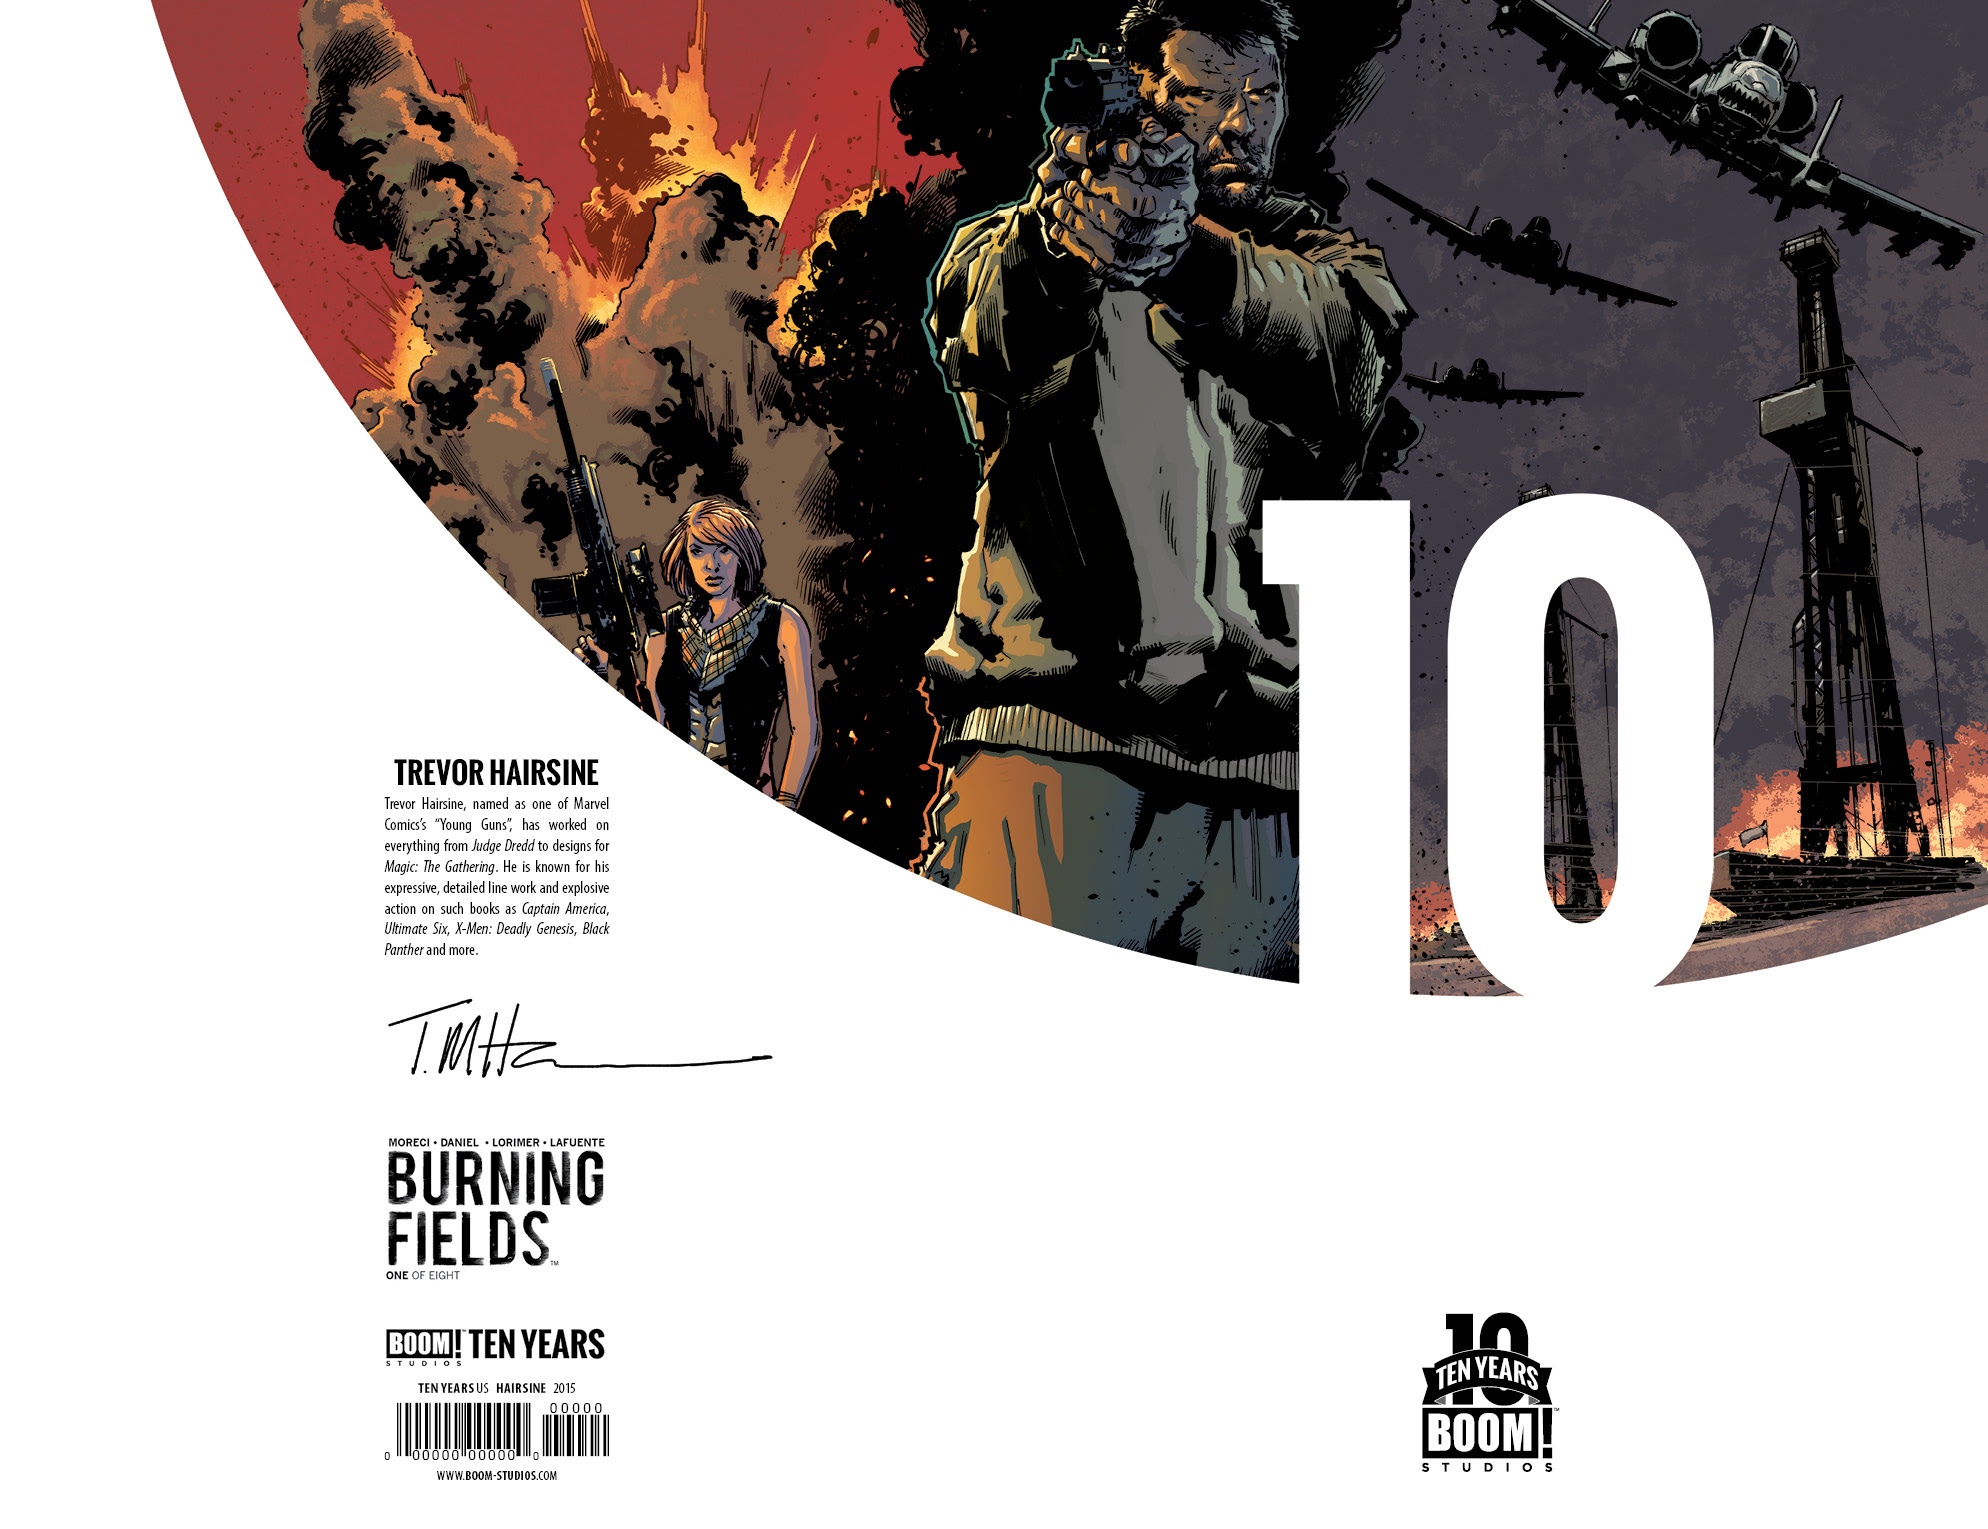 Burning Fields #1 10 Years Cover